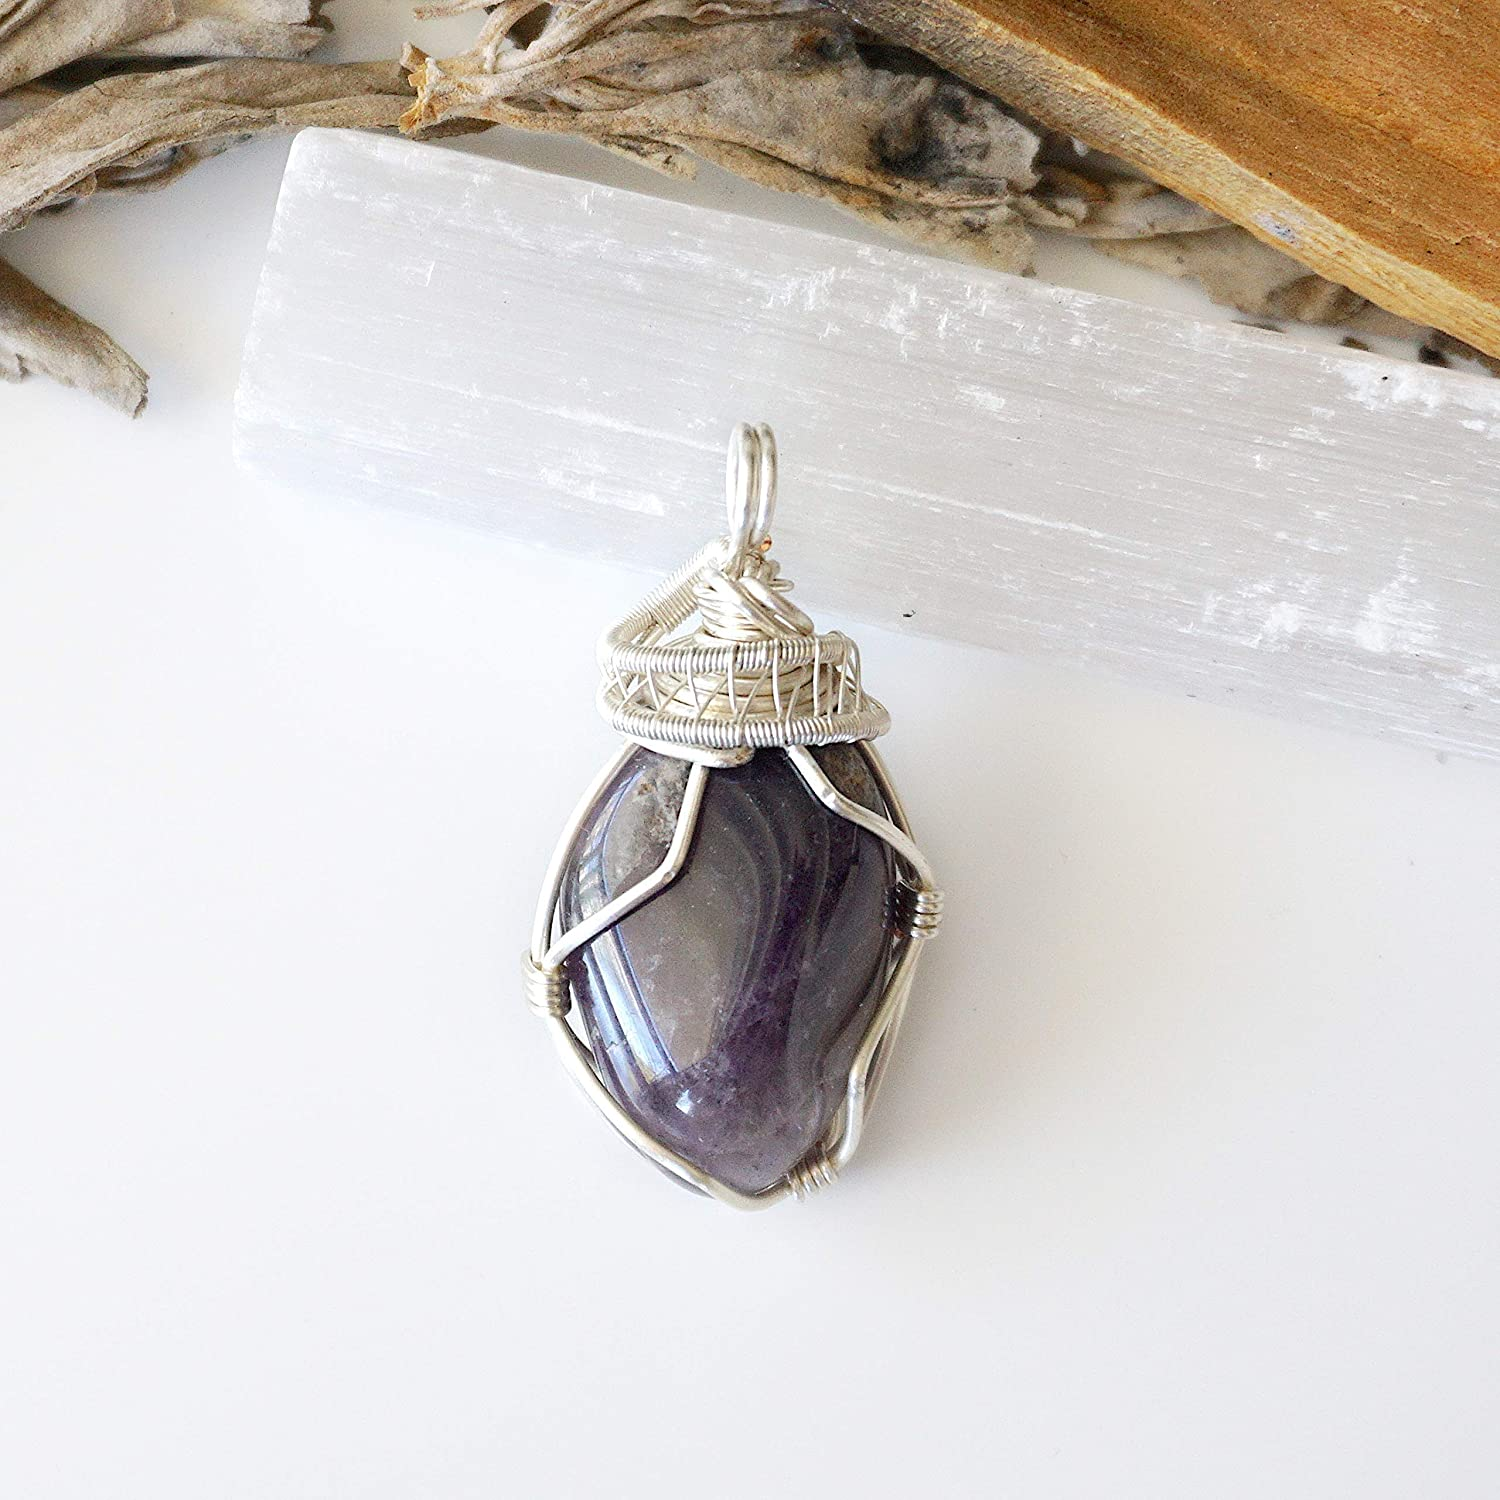 Raw LITHIUM Quartz Pendant ADHD This Healing Crystal can Assist Anxiety 58mm long Meditation Stress ADD 925 Silver Wire Wrap